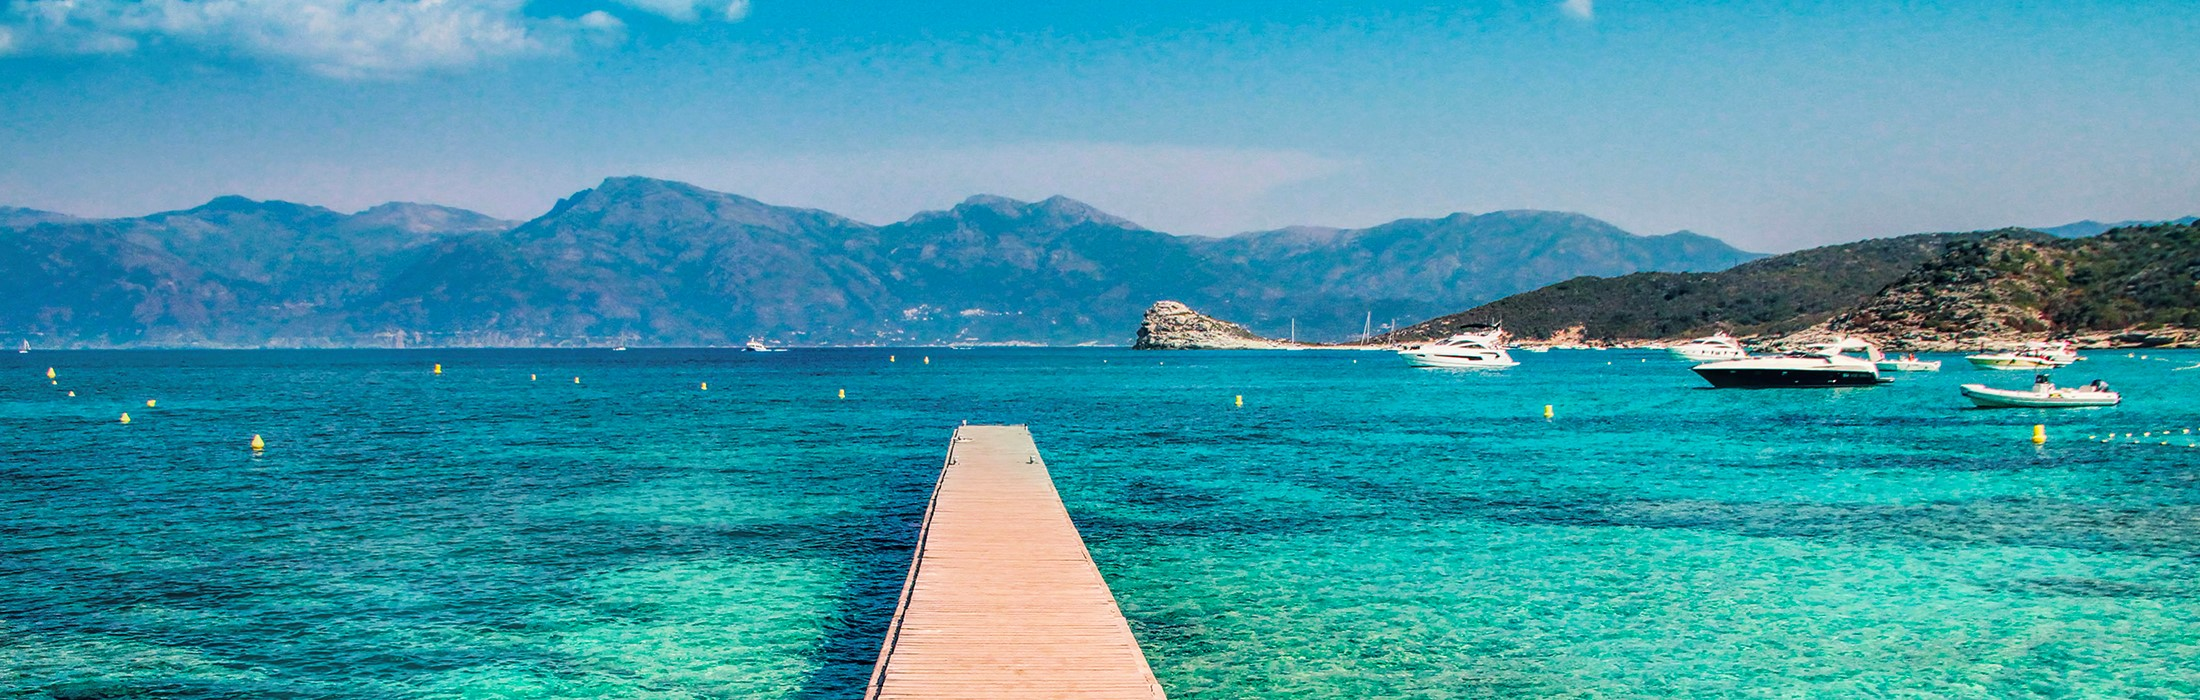 summer holidays in corsica